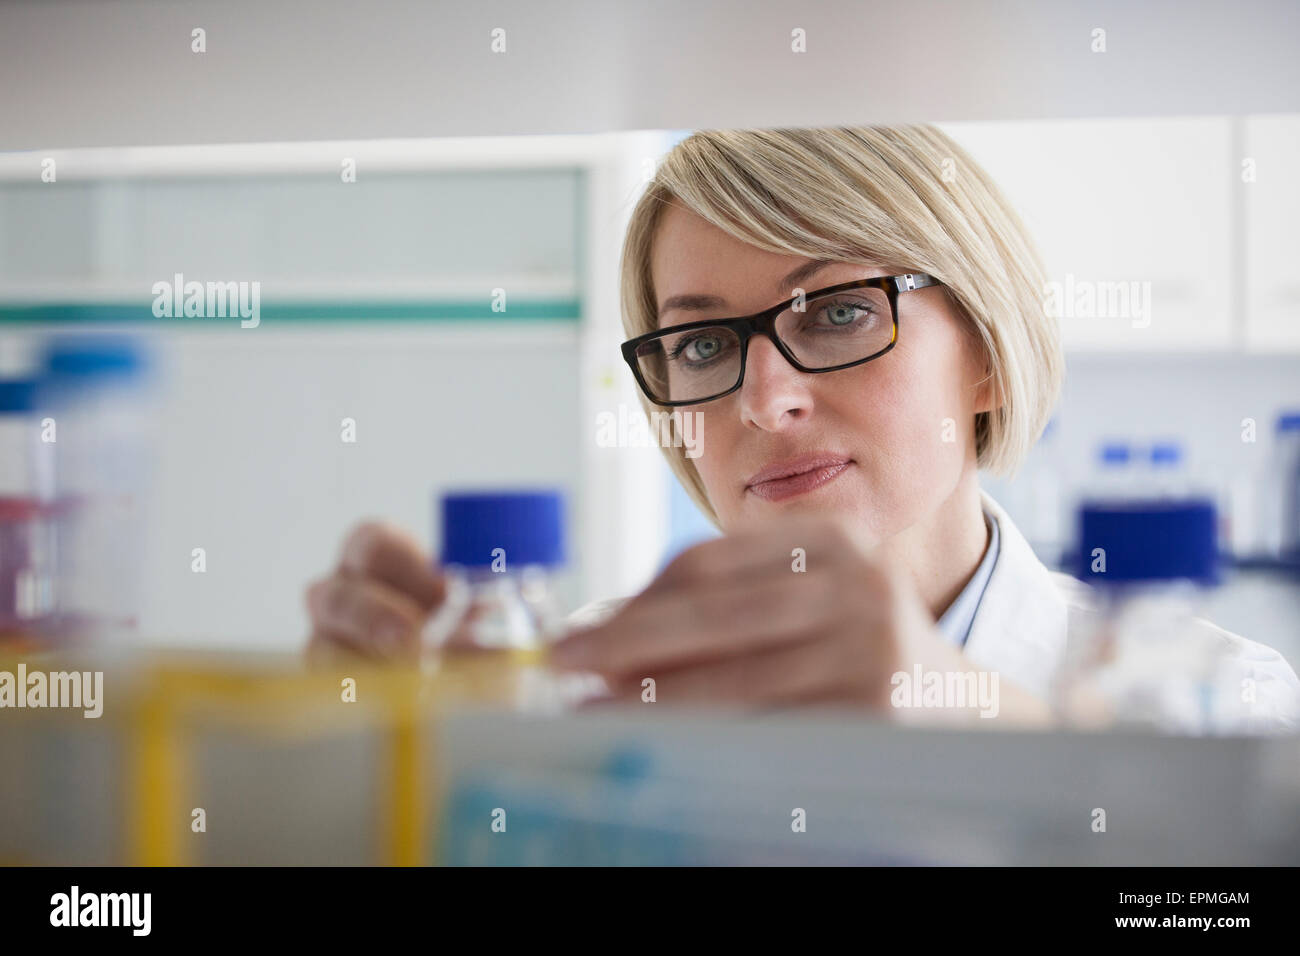 Scientist in laboratory - Stock Image